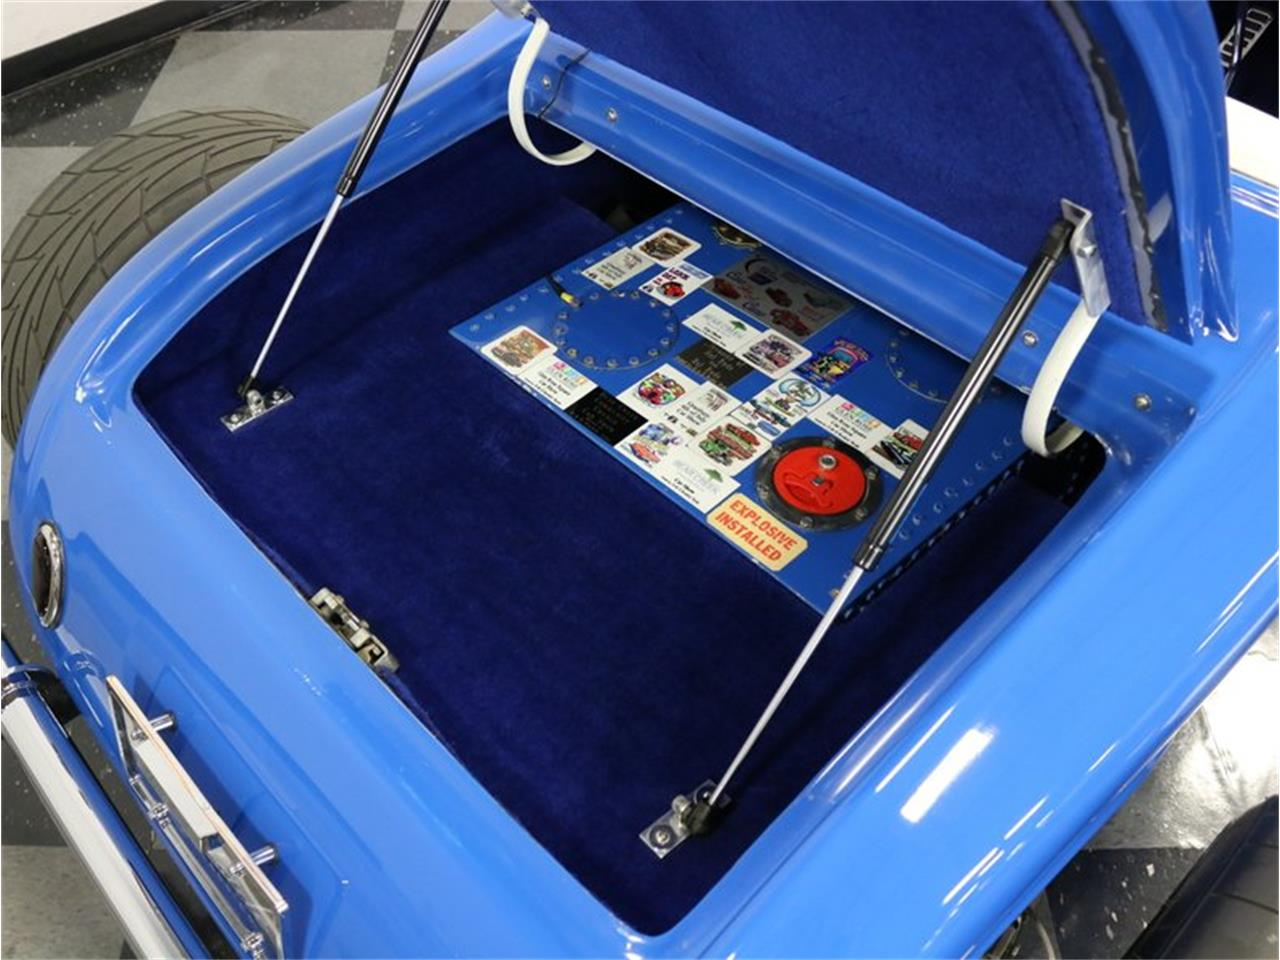 Large Picture of Classic 1927 Ford Model T - $29,995.00 Offered by Streetside Classics - Dallas / Fort Worth - MAZM